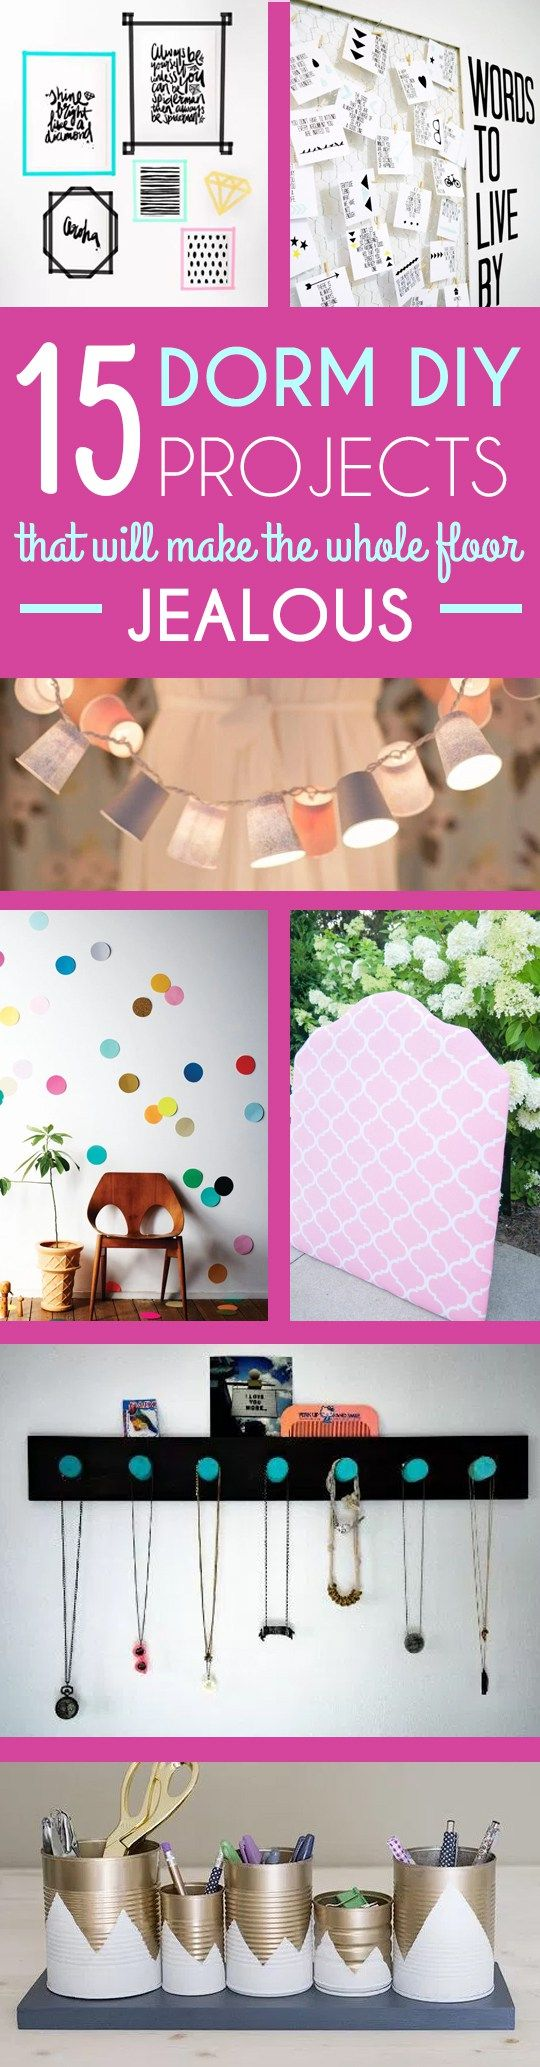 15 Dorm DIY Projects that will make the whole floor jealous